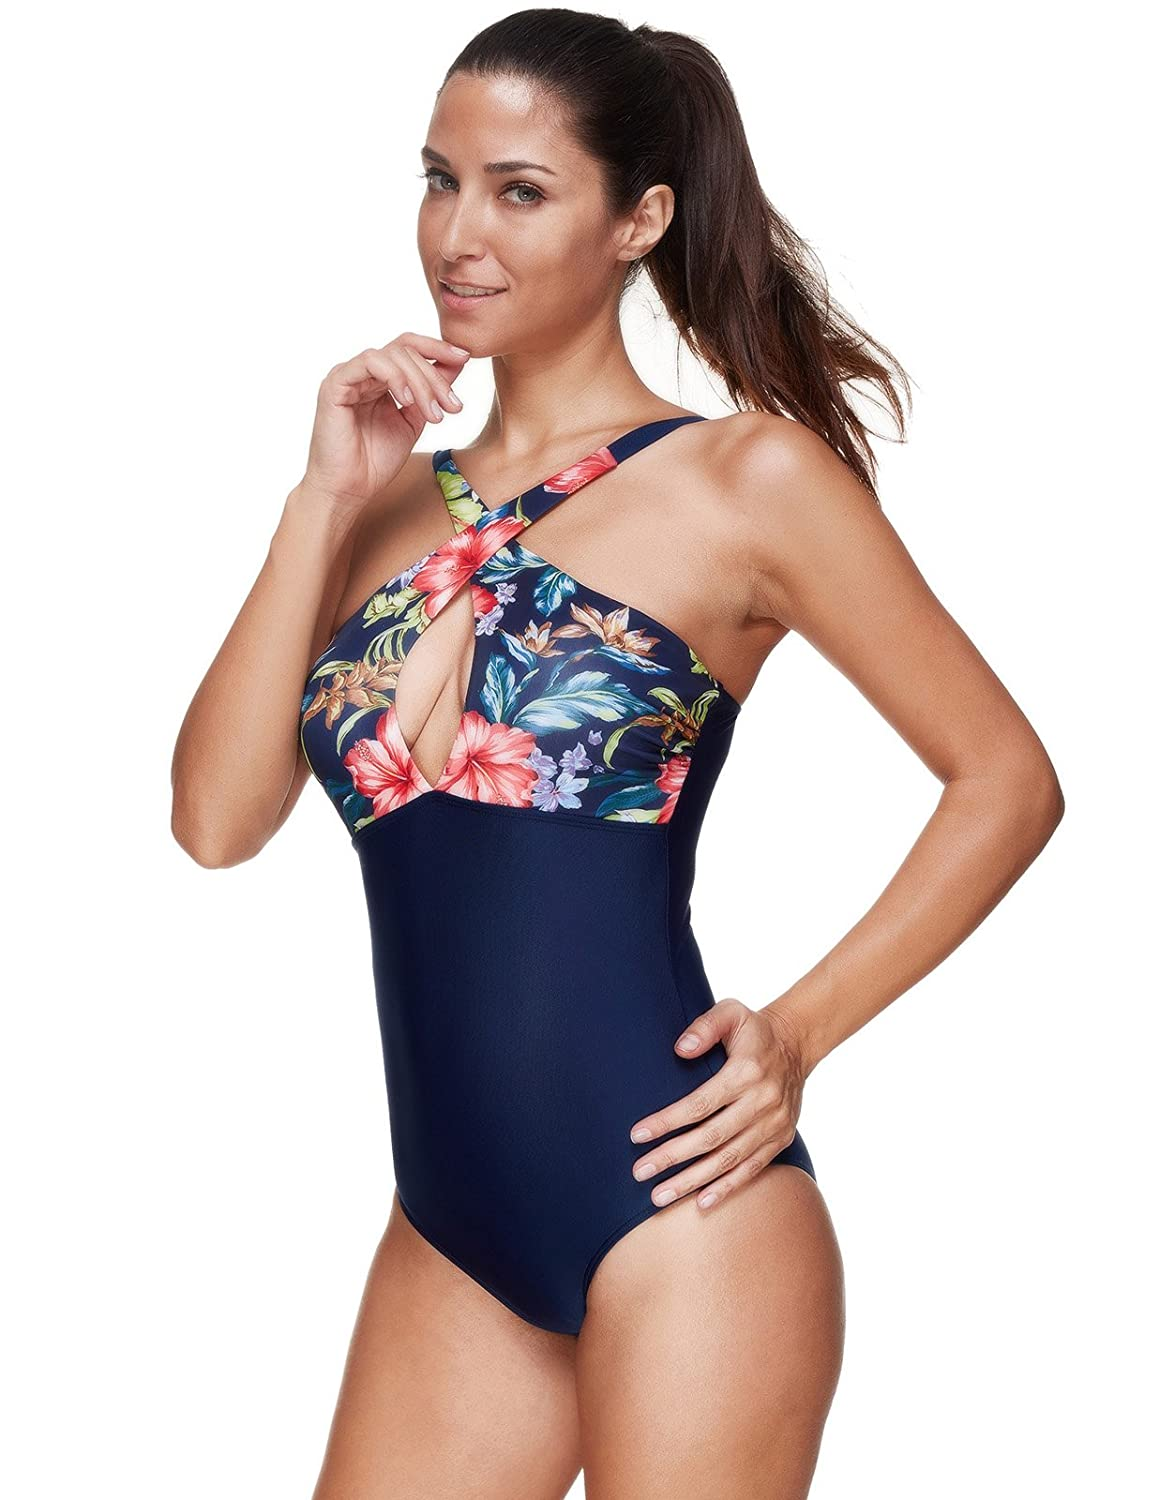 afd614830e4da Zexxxy One Piece Retro Hight Waist Swimsuit Tropical Monokini Size M Navy  Blue at Amazon Women s Clothing store